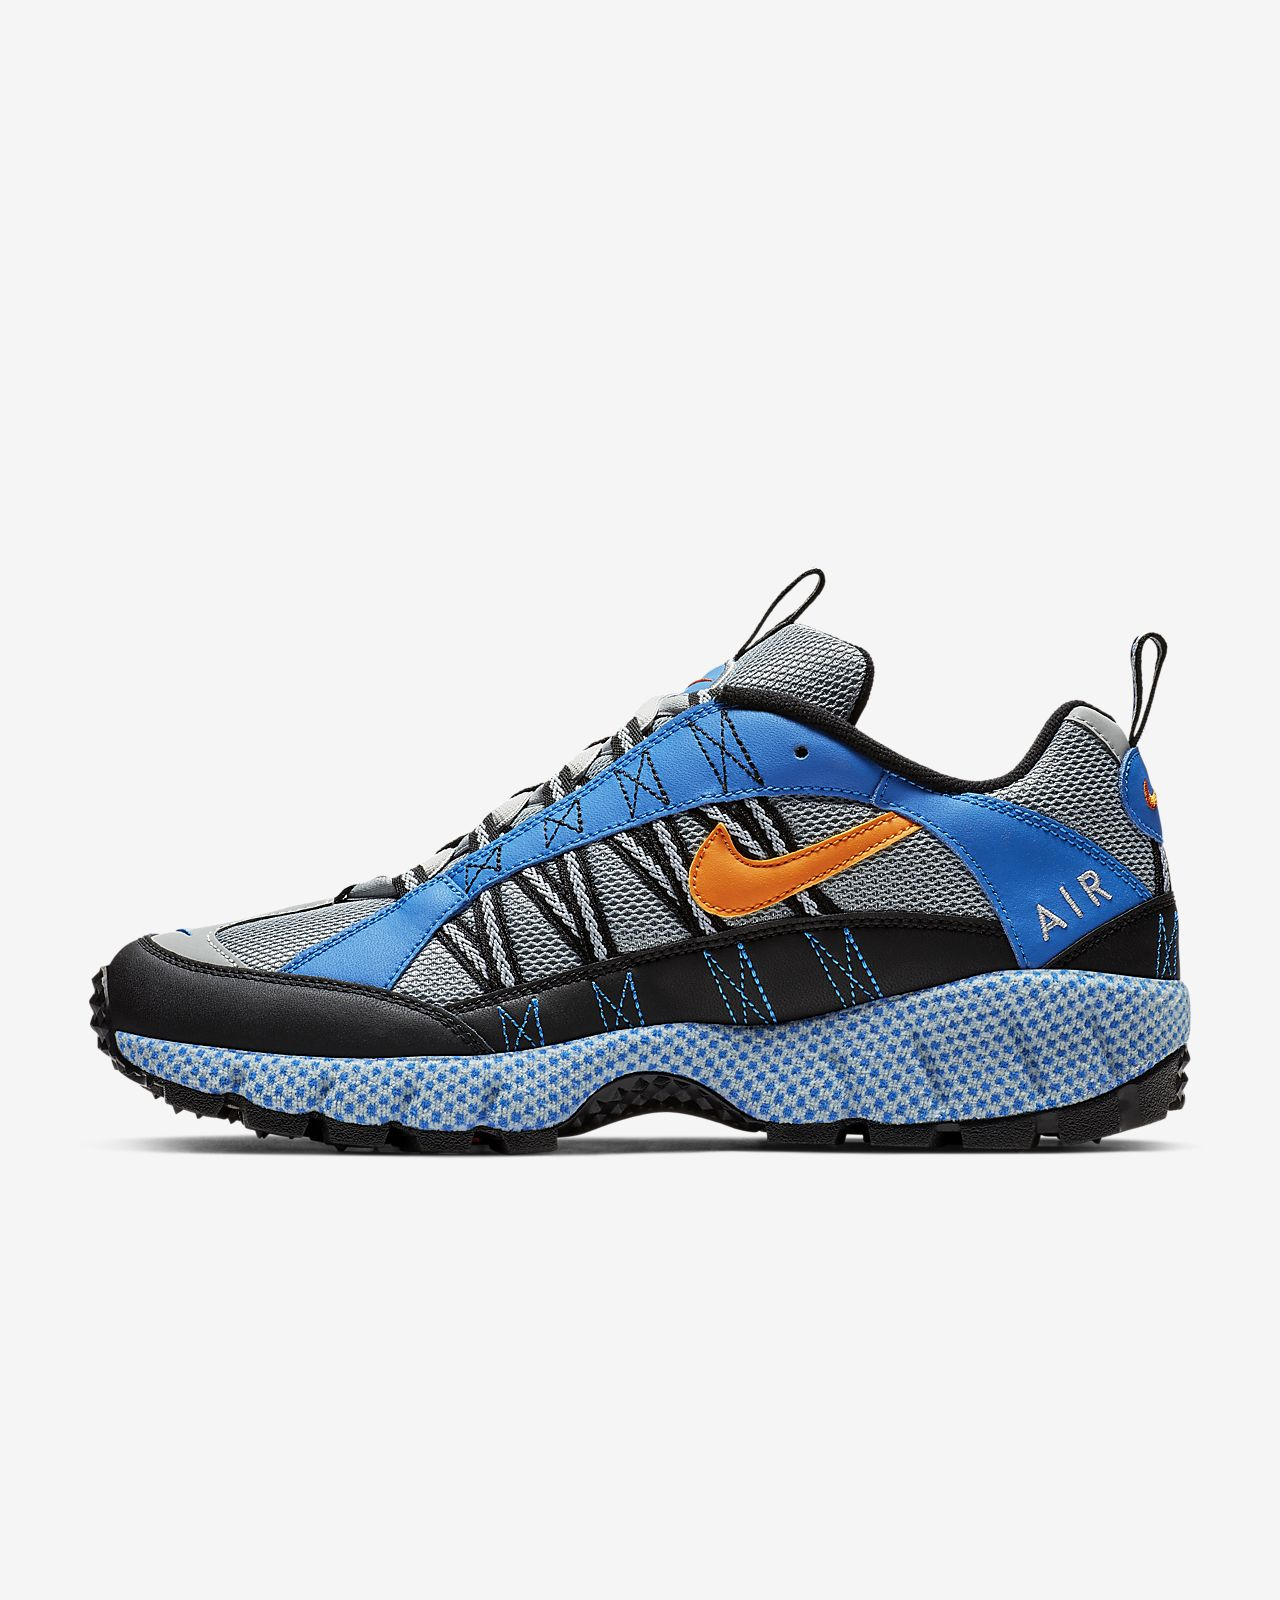 new styles a6b4a 9e813 Nike Air Humara '17 QS Men's Shoe. Nike.com ZA